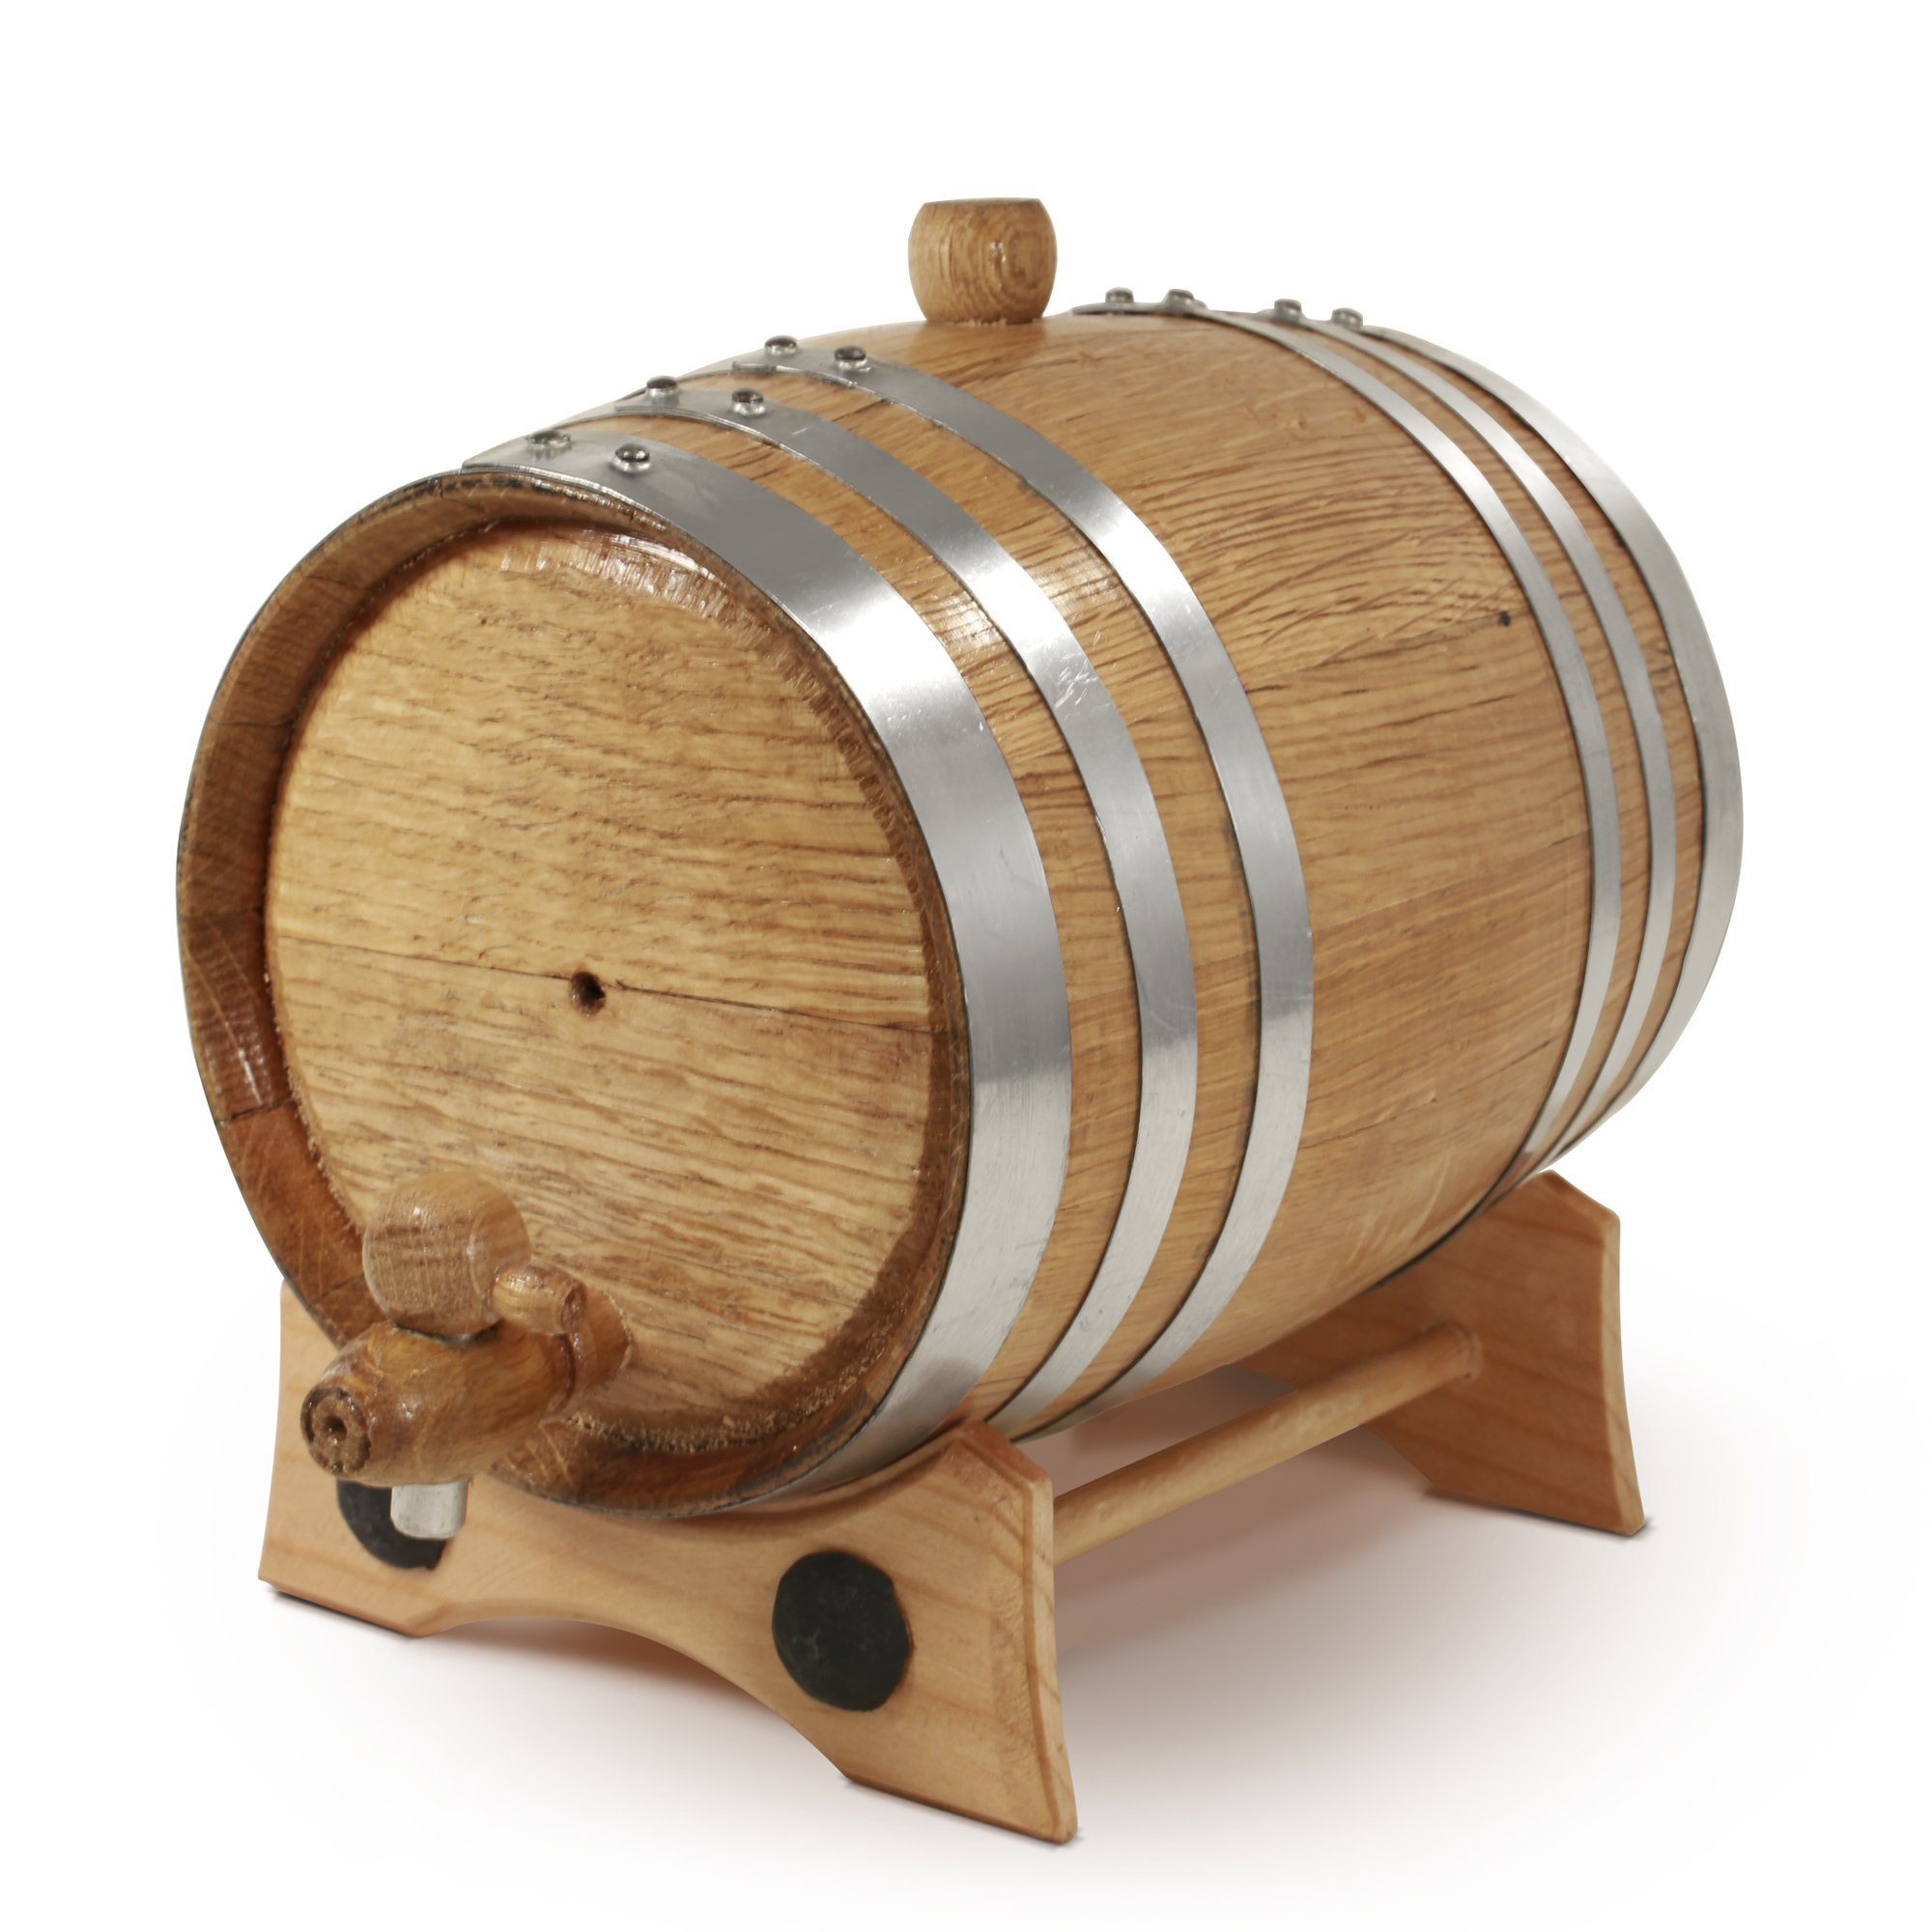 1 Liter Whiskey Oak Barrel for Aging – Golden Oak Barrel with Polished Steel Hoops – Aging and Recipes Digital Guide included